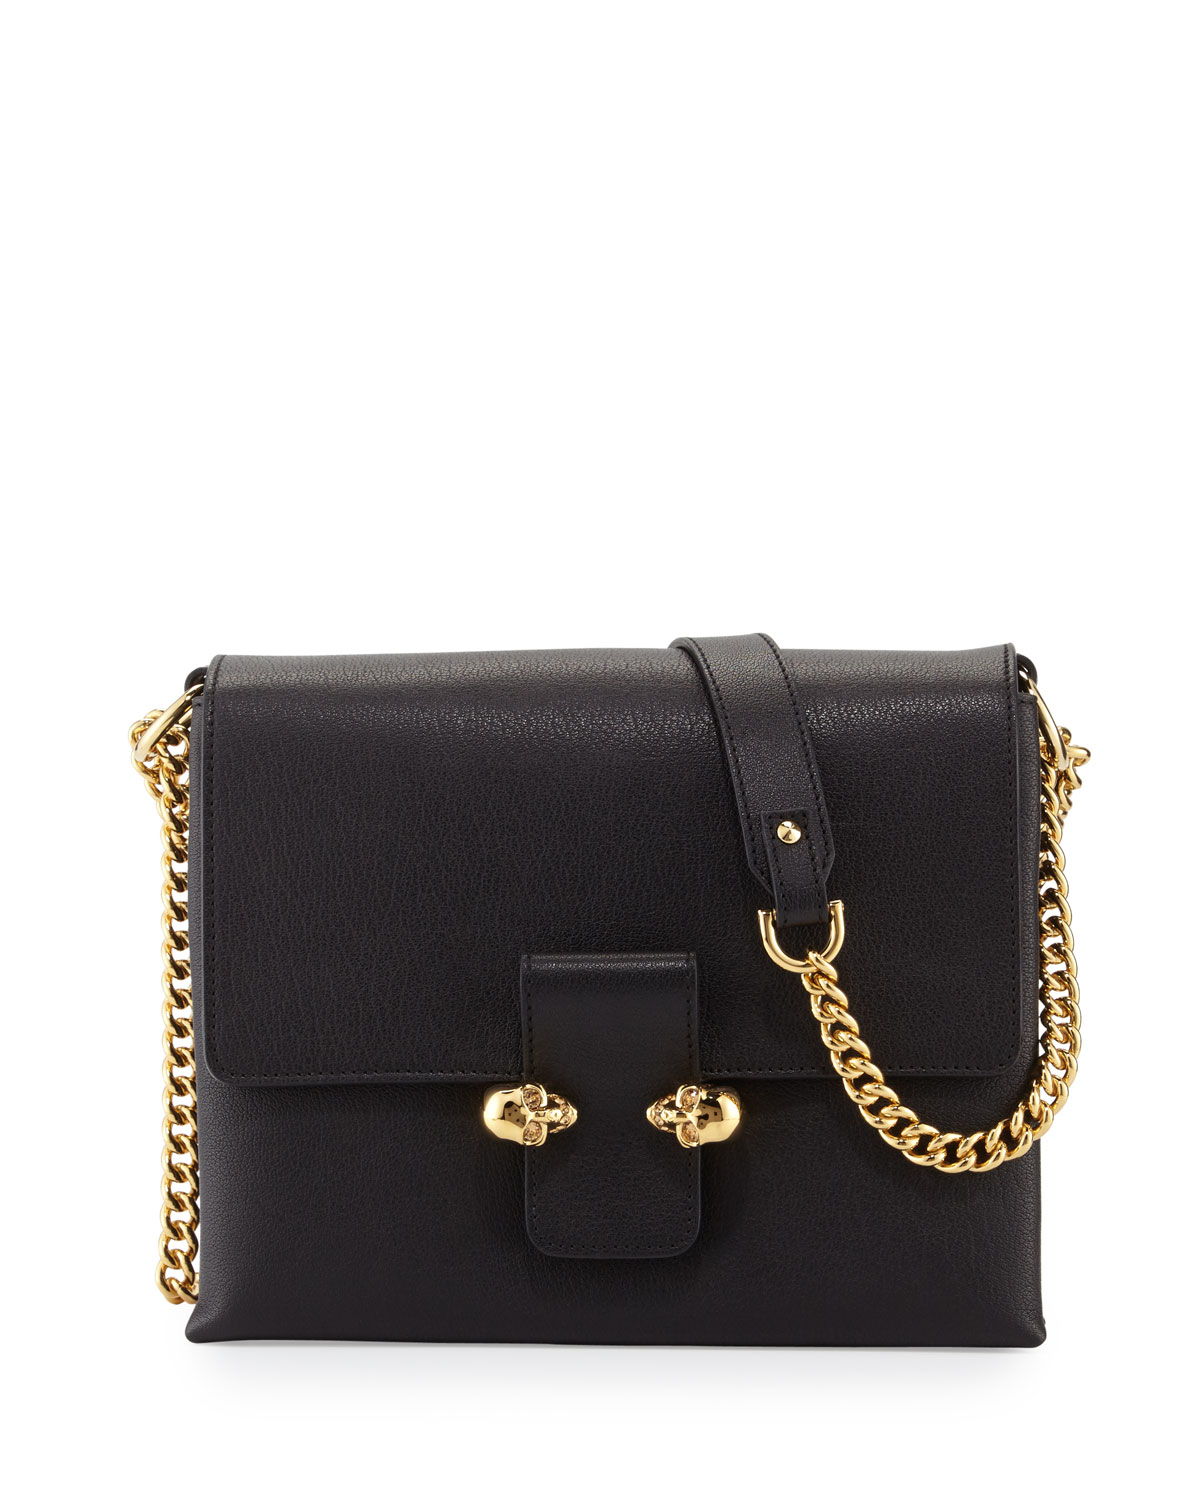 Twin Skull Leather Crossbody Bag Black